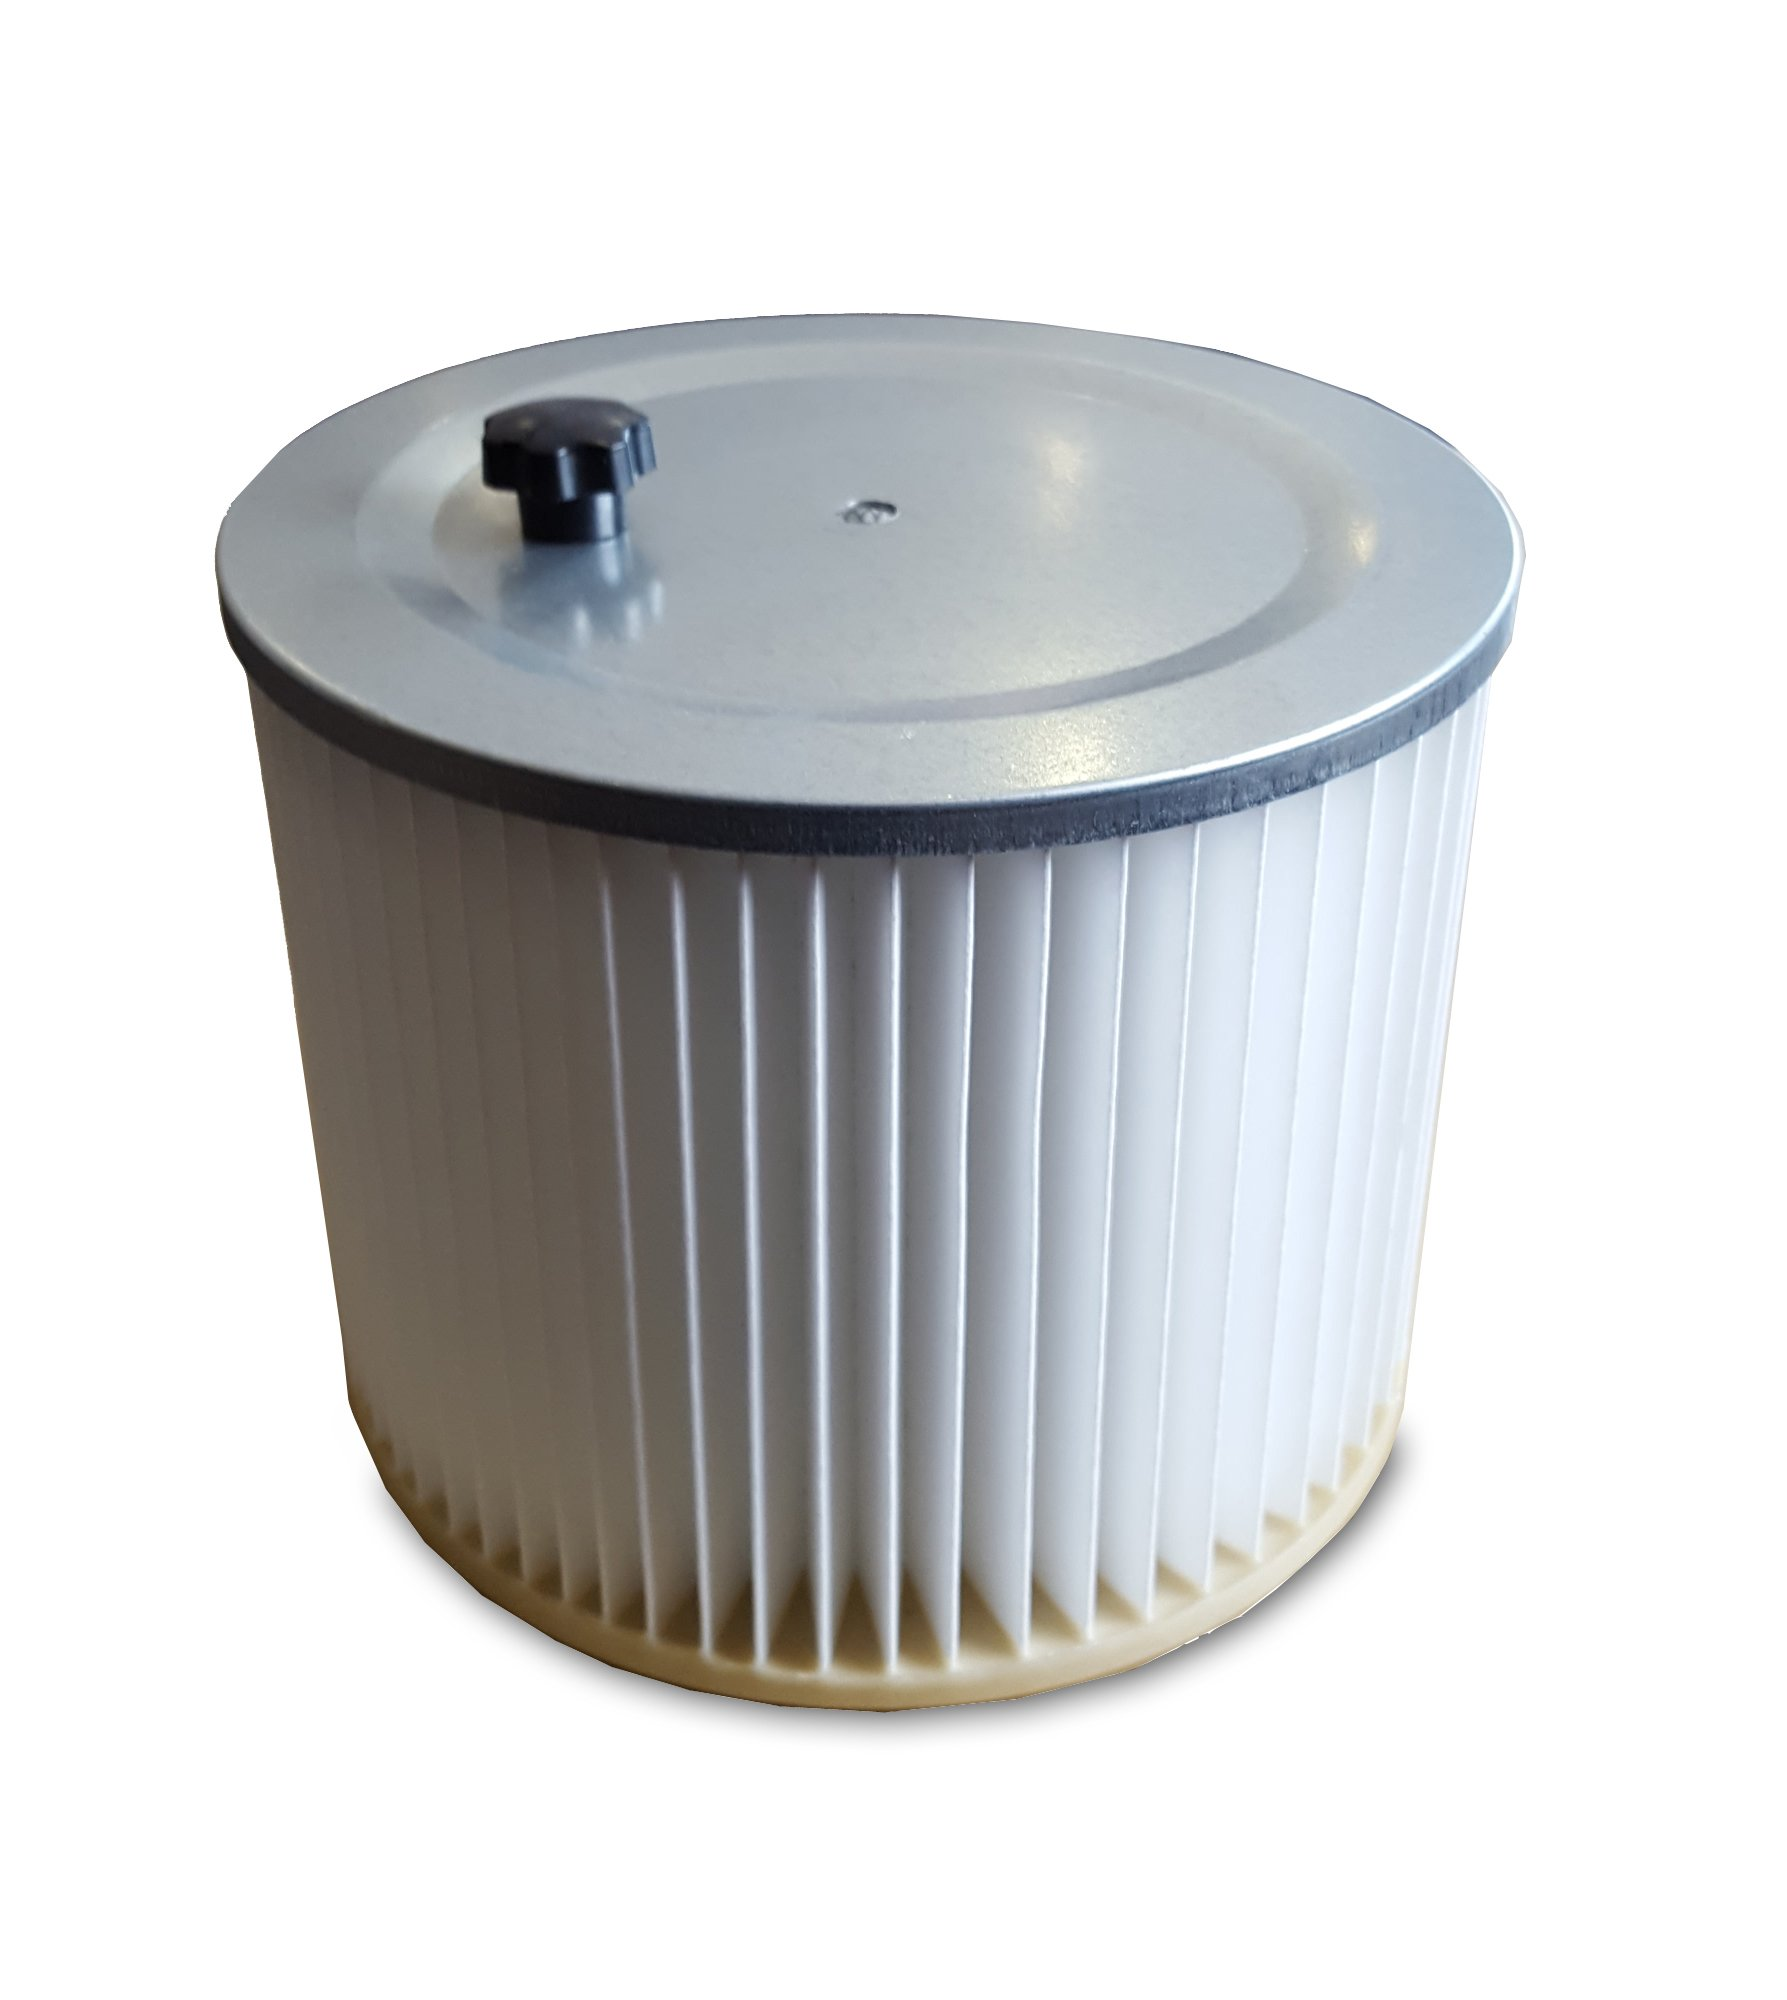 Prolux New Replacement HEPA Filter for The Central Vacuum Cleaner